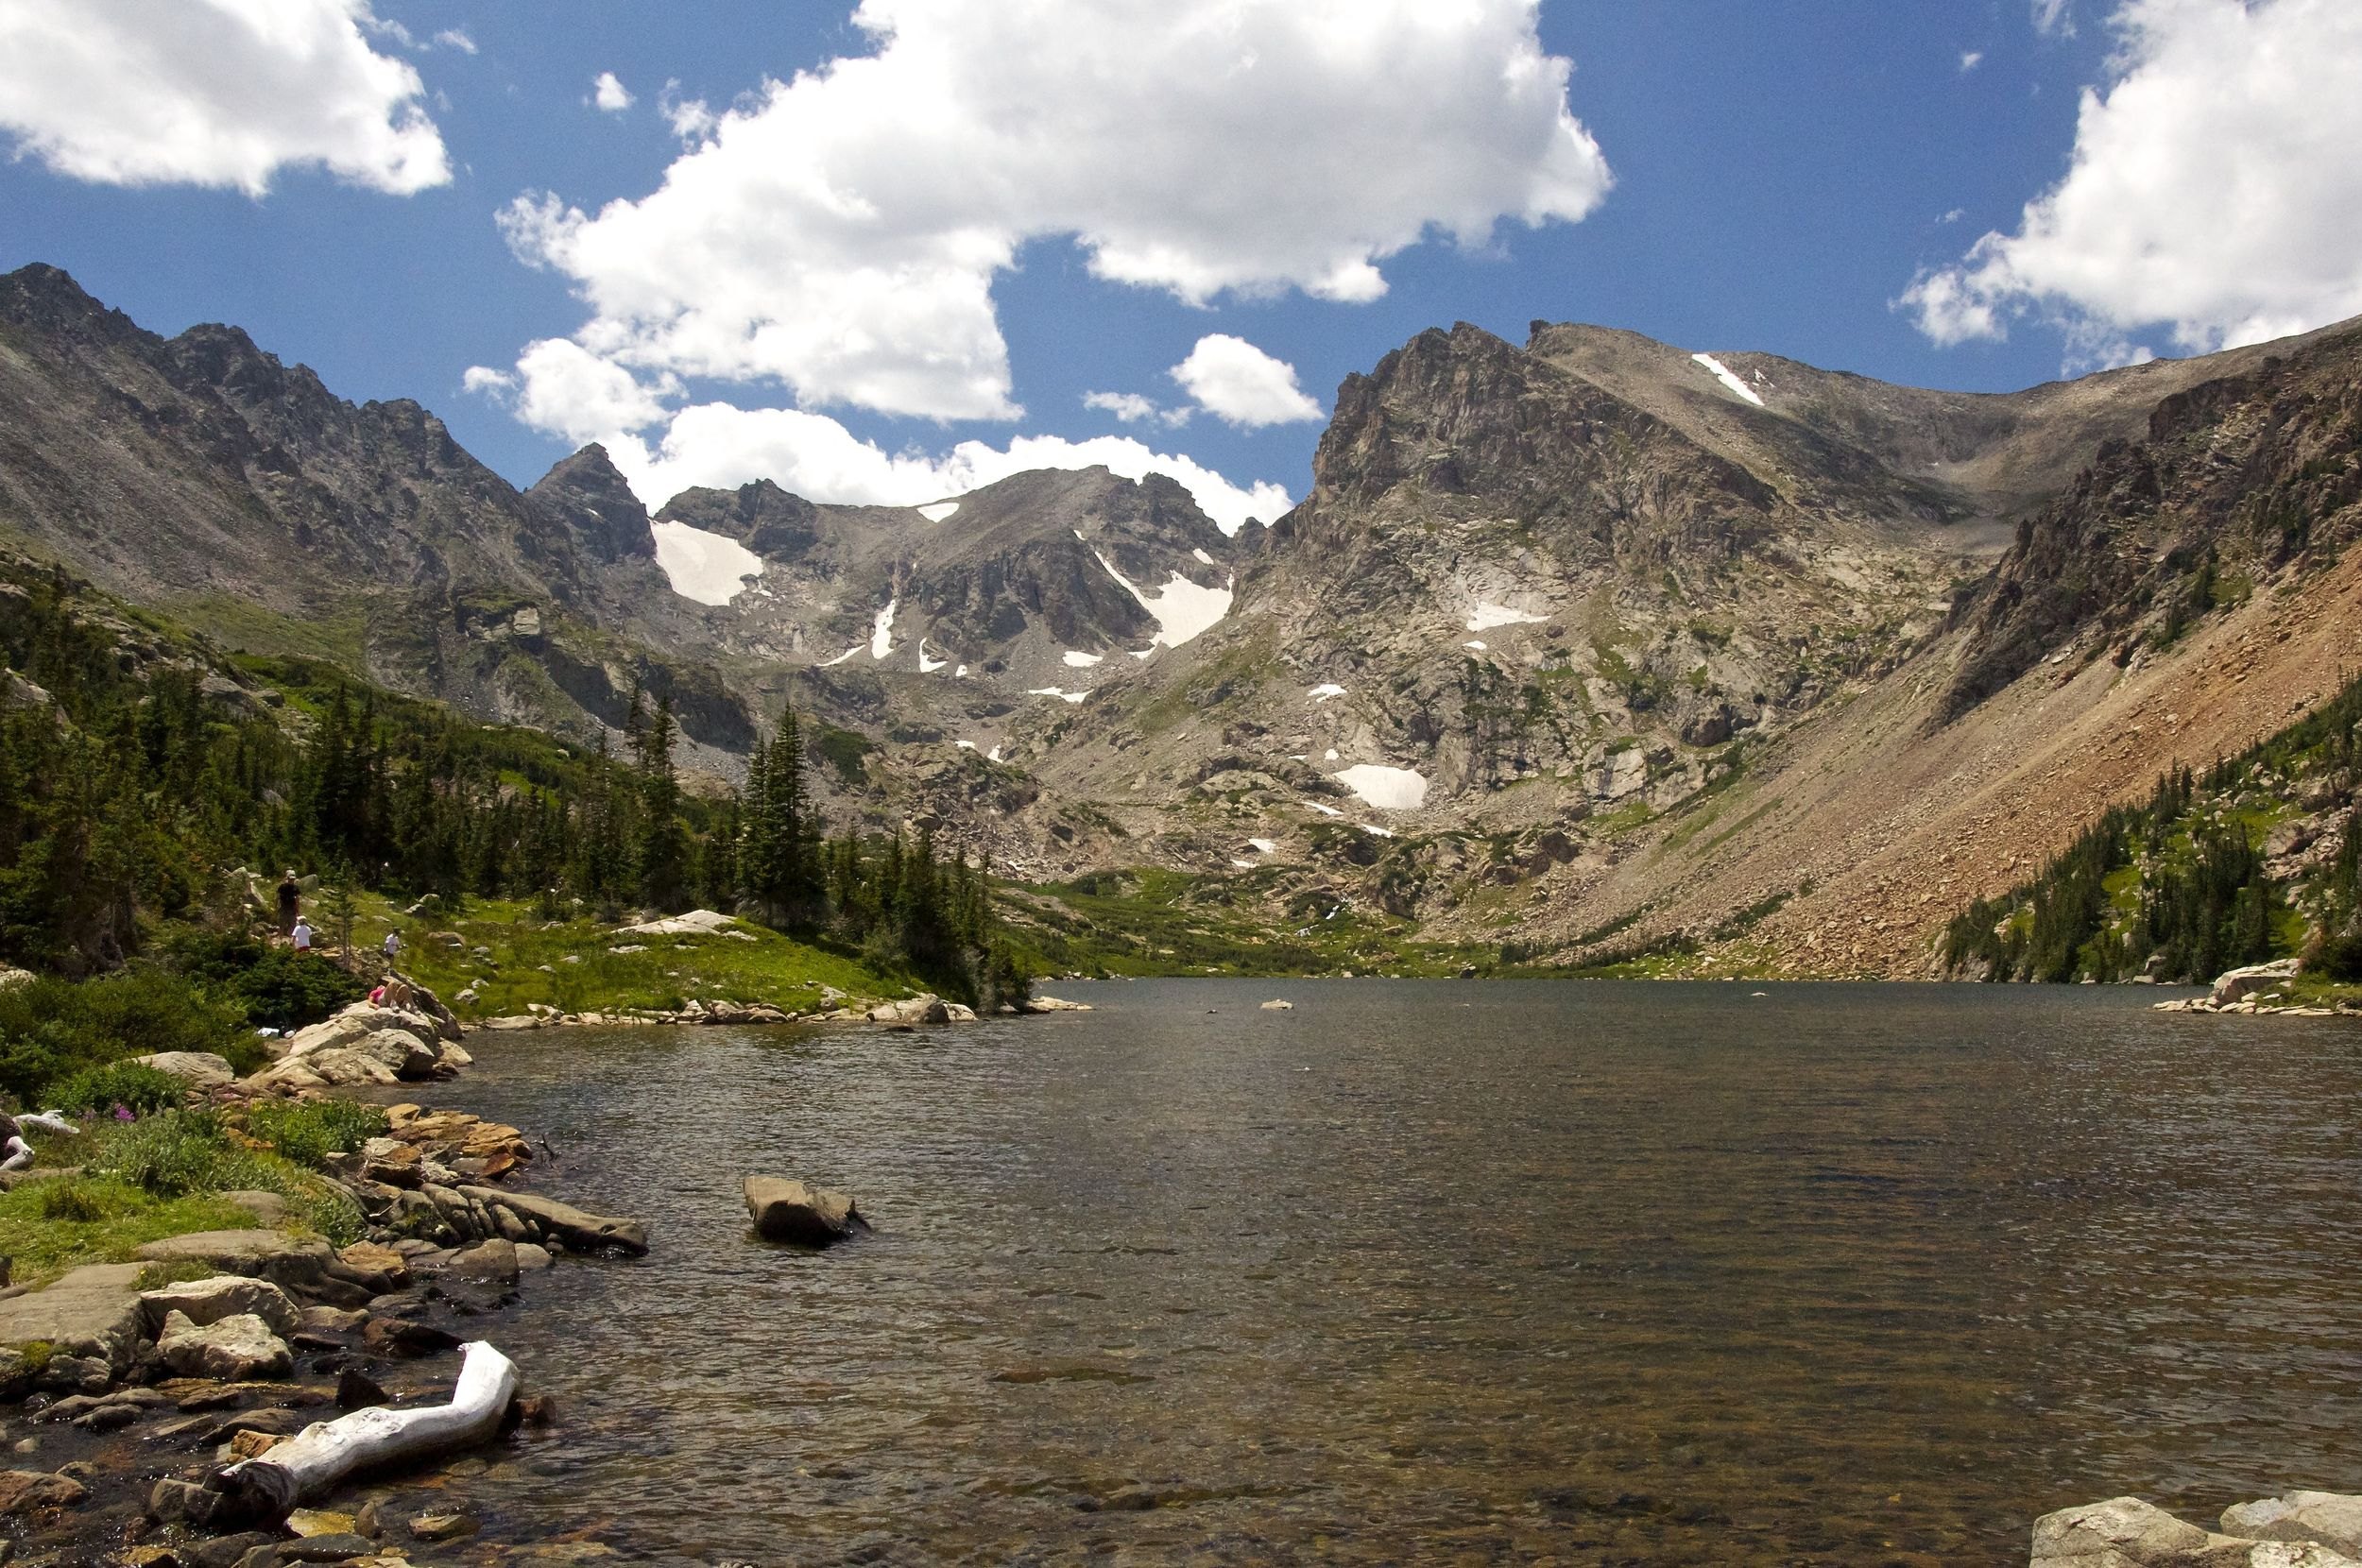 Lake Isabelle sits in the cirque of the rugged Indian Peaks